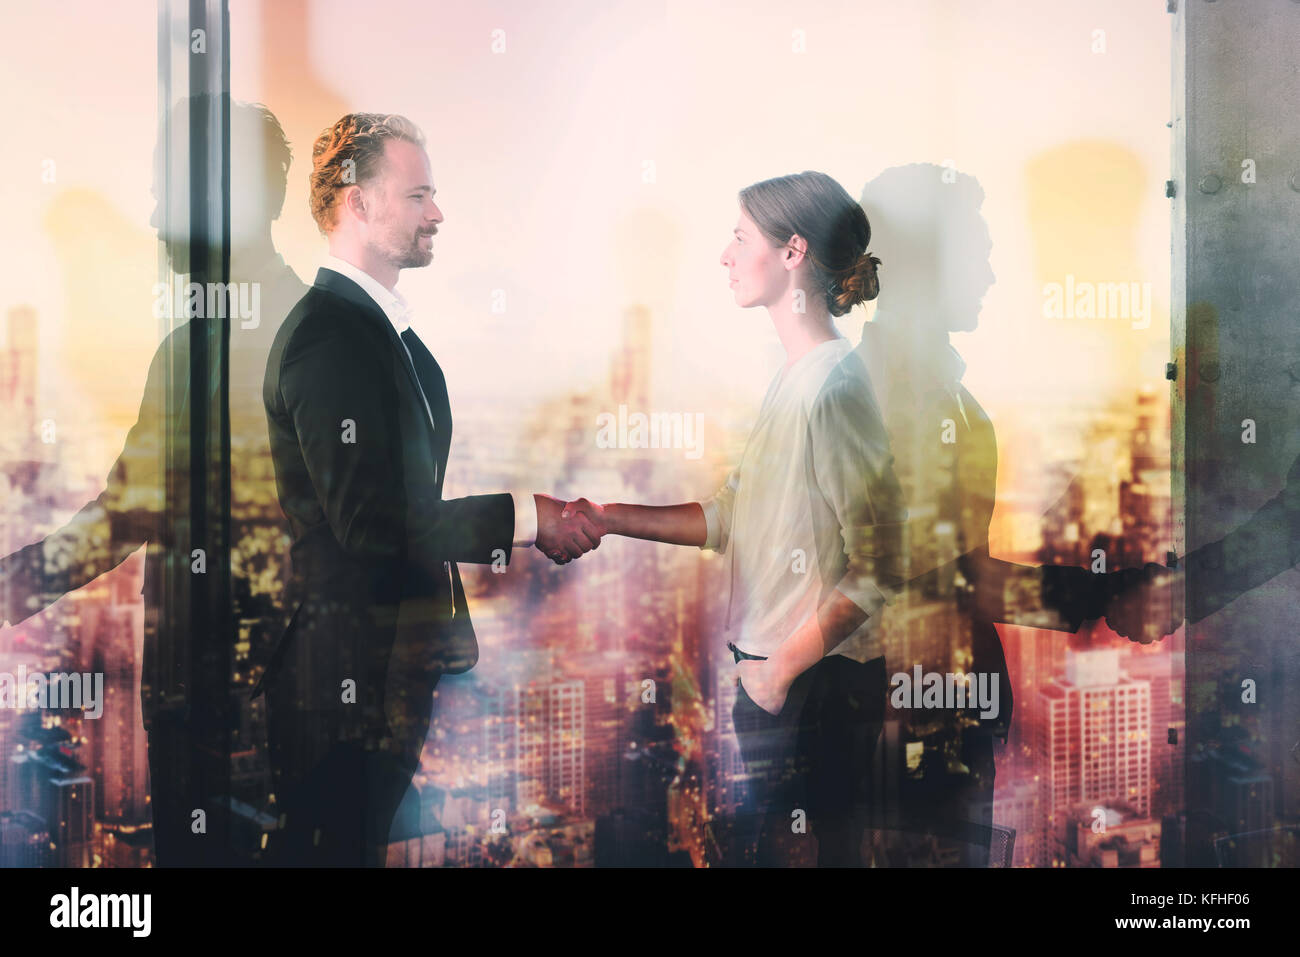 Handshake of two businessperson in office concept of partnership and teamwork - Stock Image